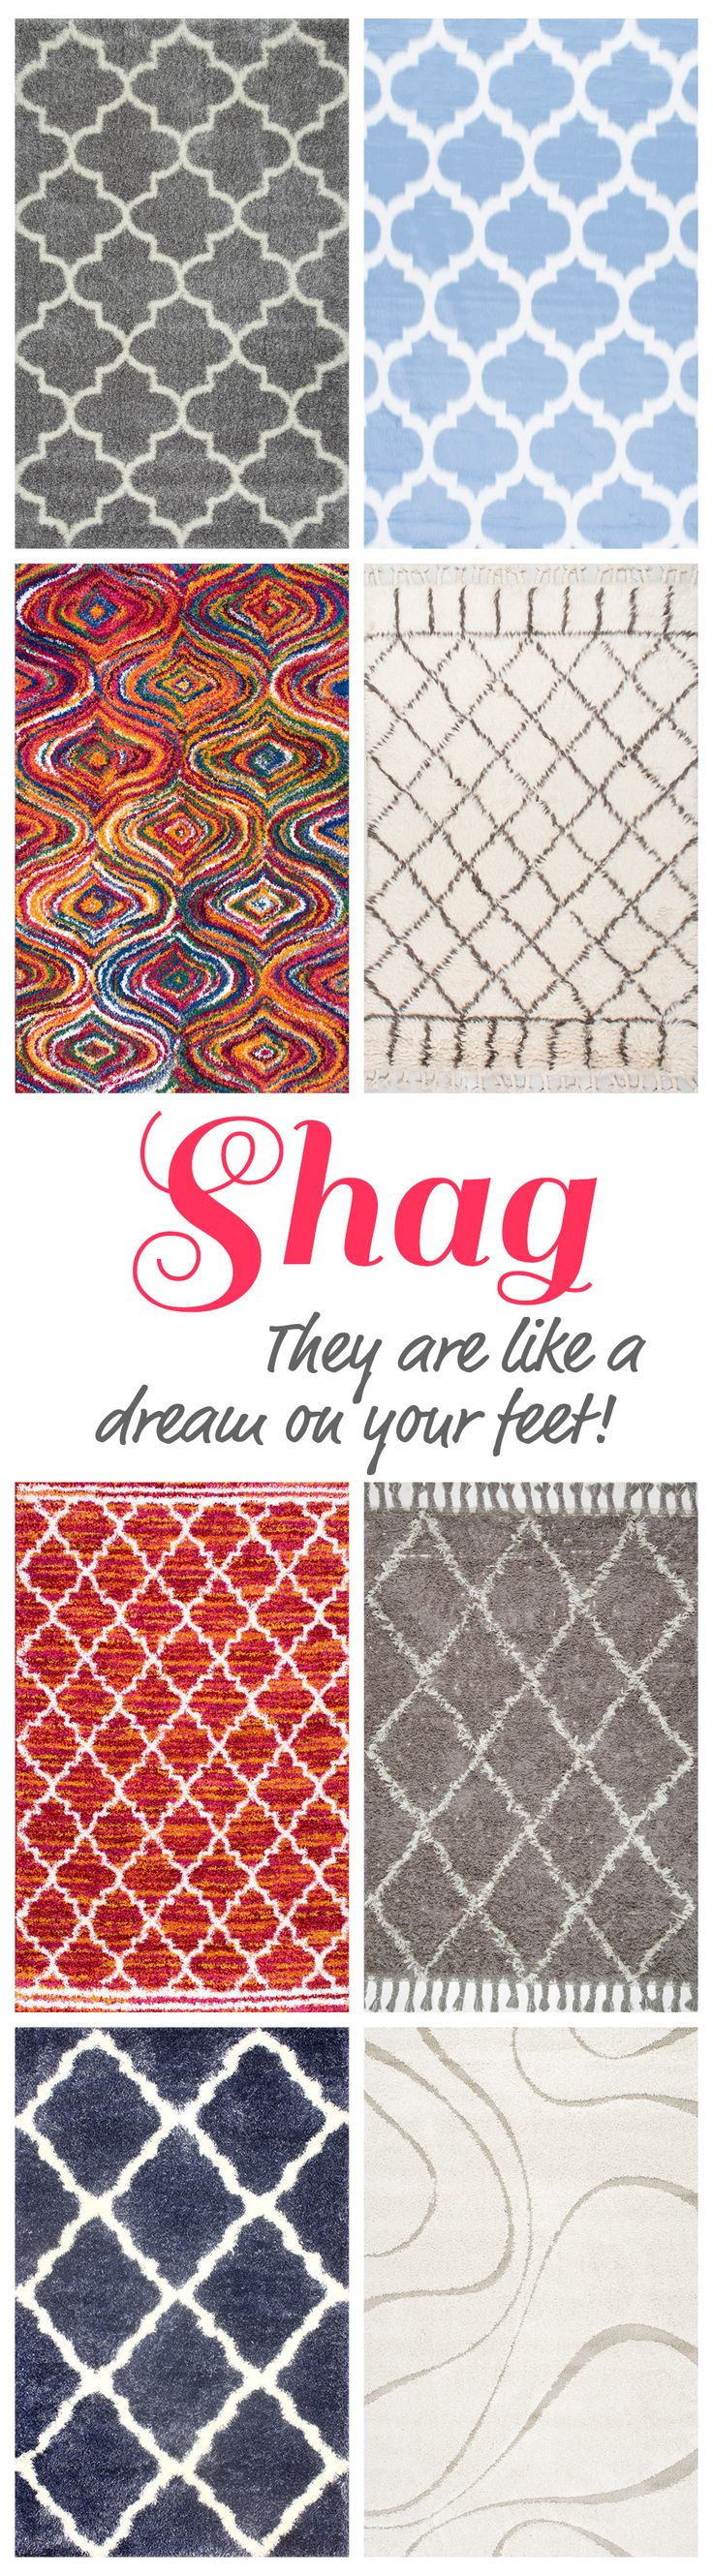 161 best fluffy shag images on pinterest | rugs usa, shag rugs and